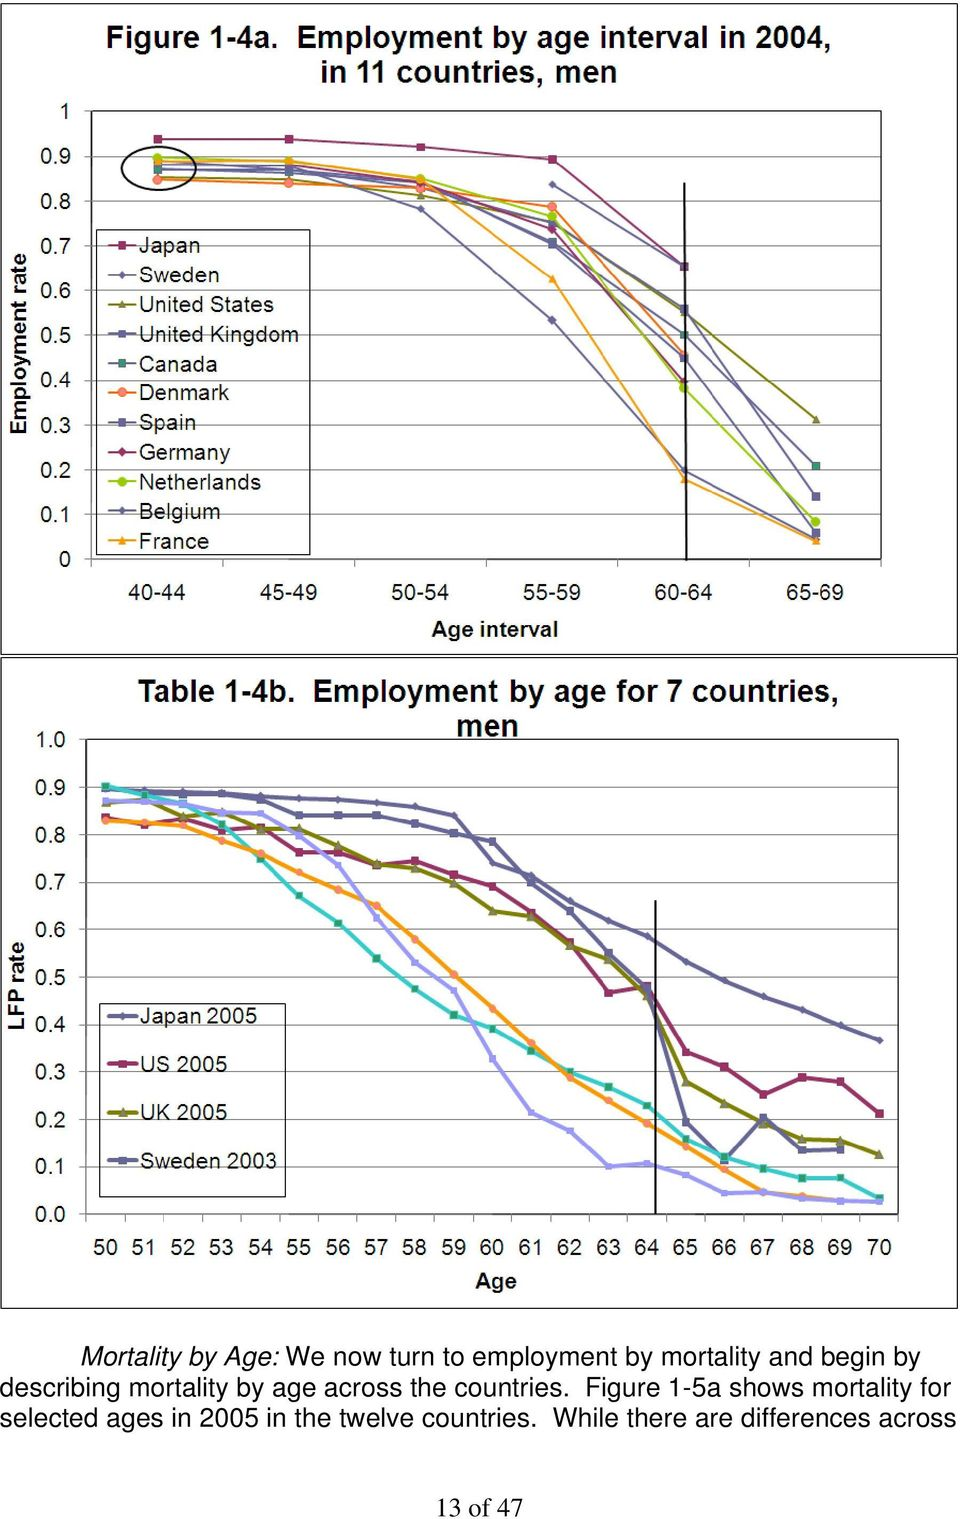 Figure 1-5a shows mortality for selected ages in 2005 in the